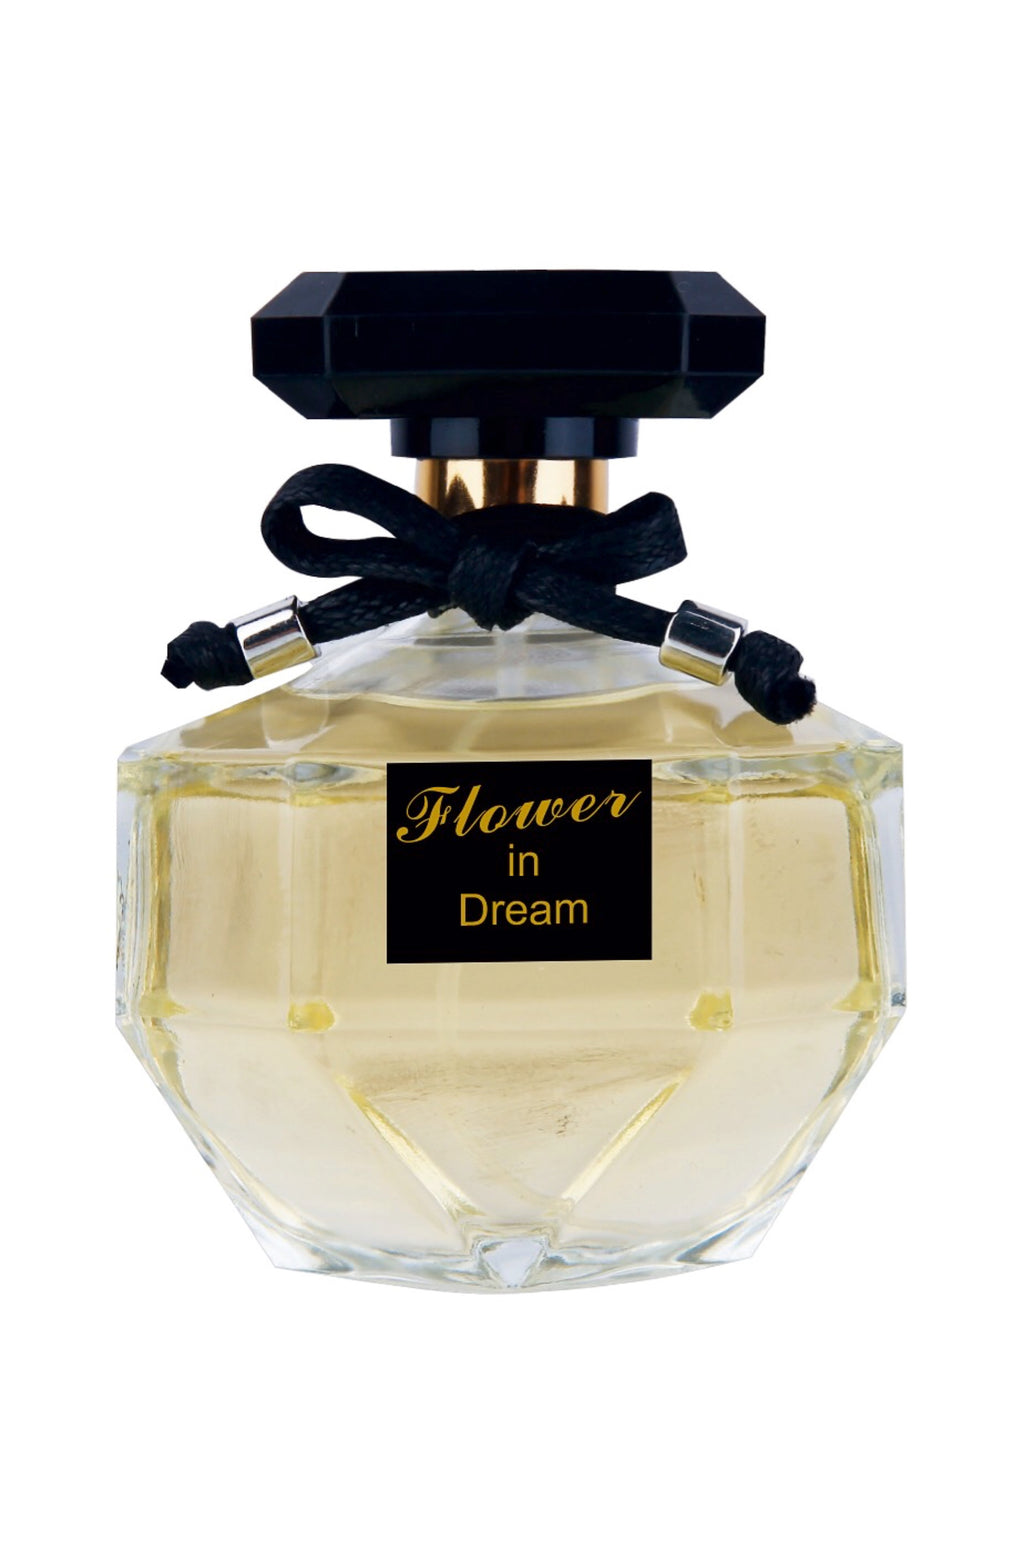 Flower in Dream Perfume Bottle